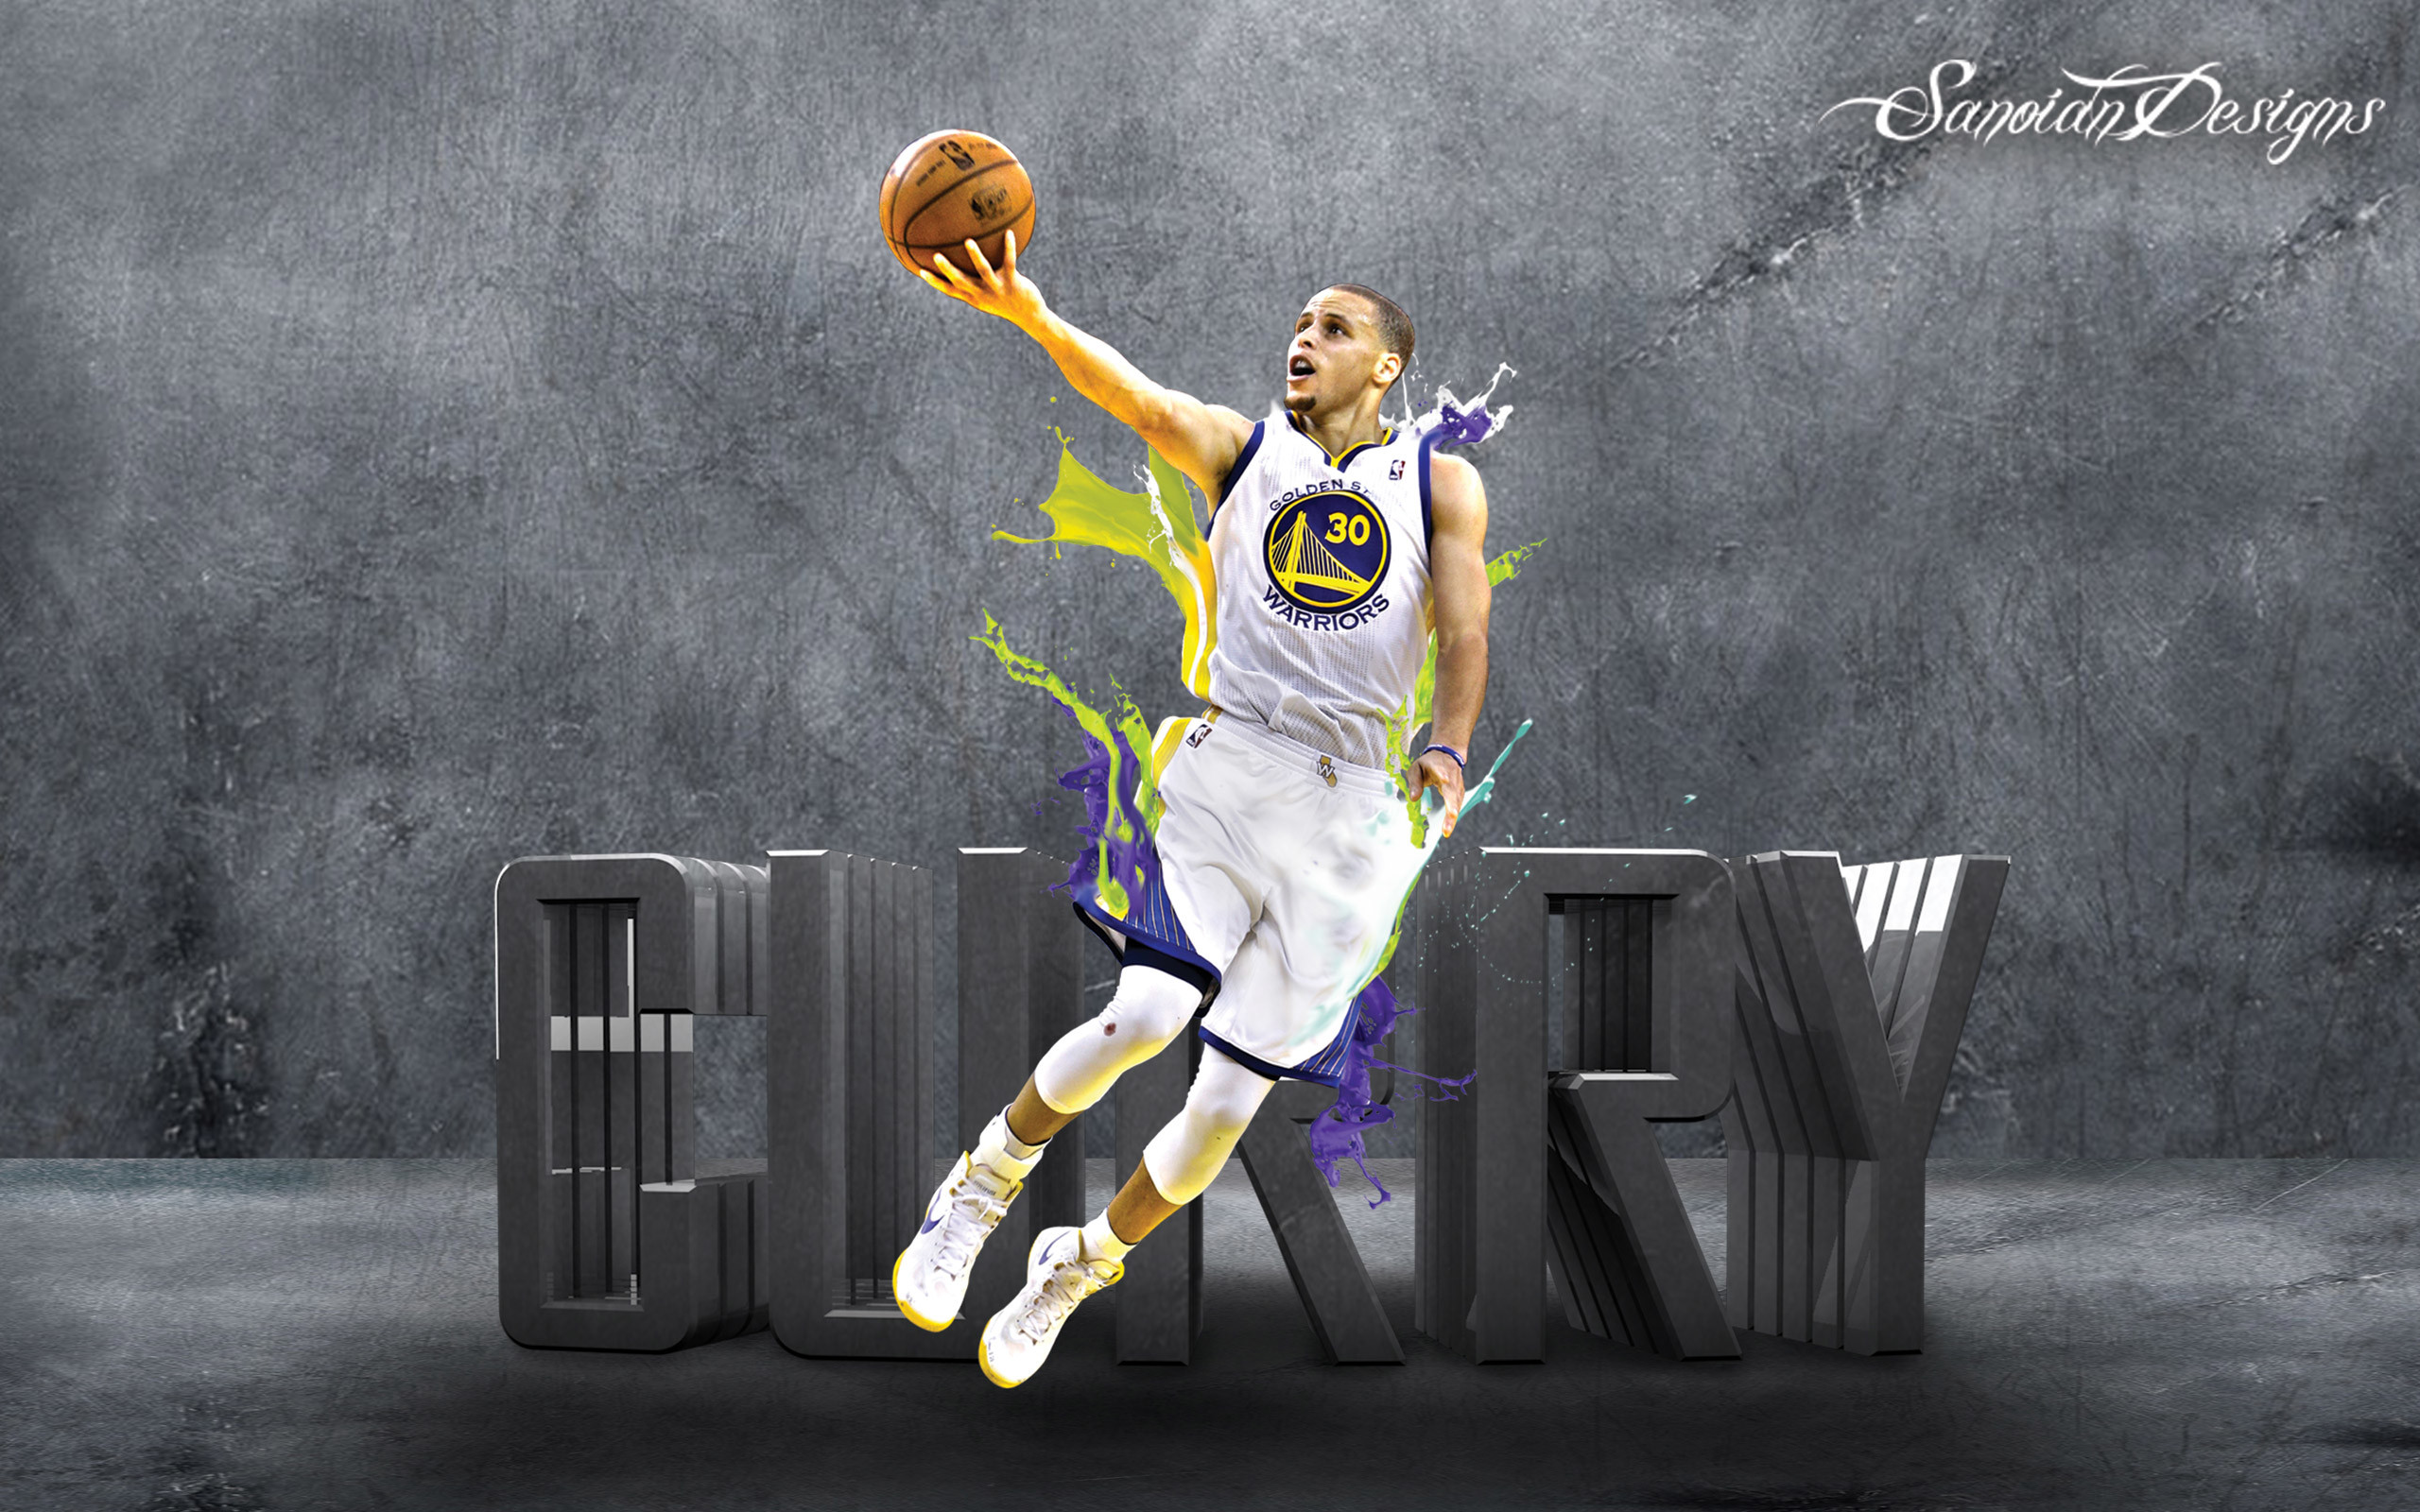 Stephen Curry wallpaper 2014 Download – Stephen Curry wallpaper .